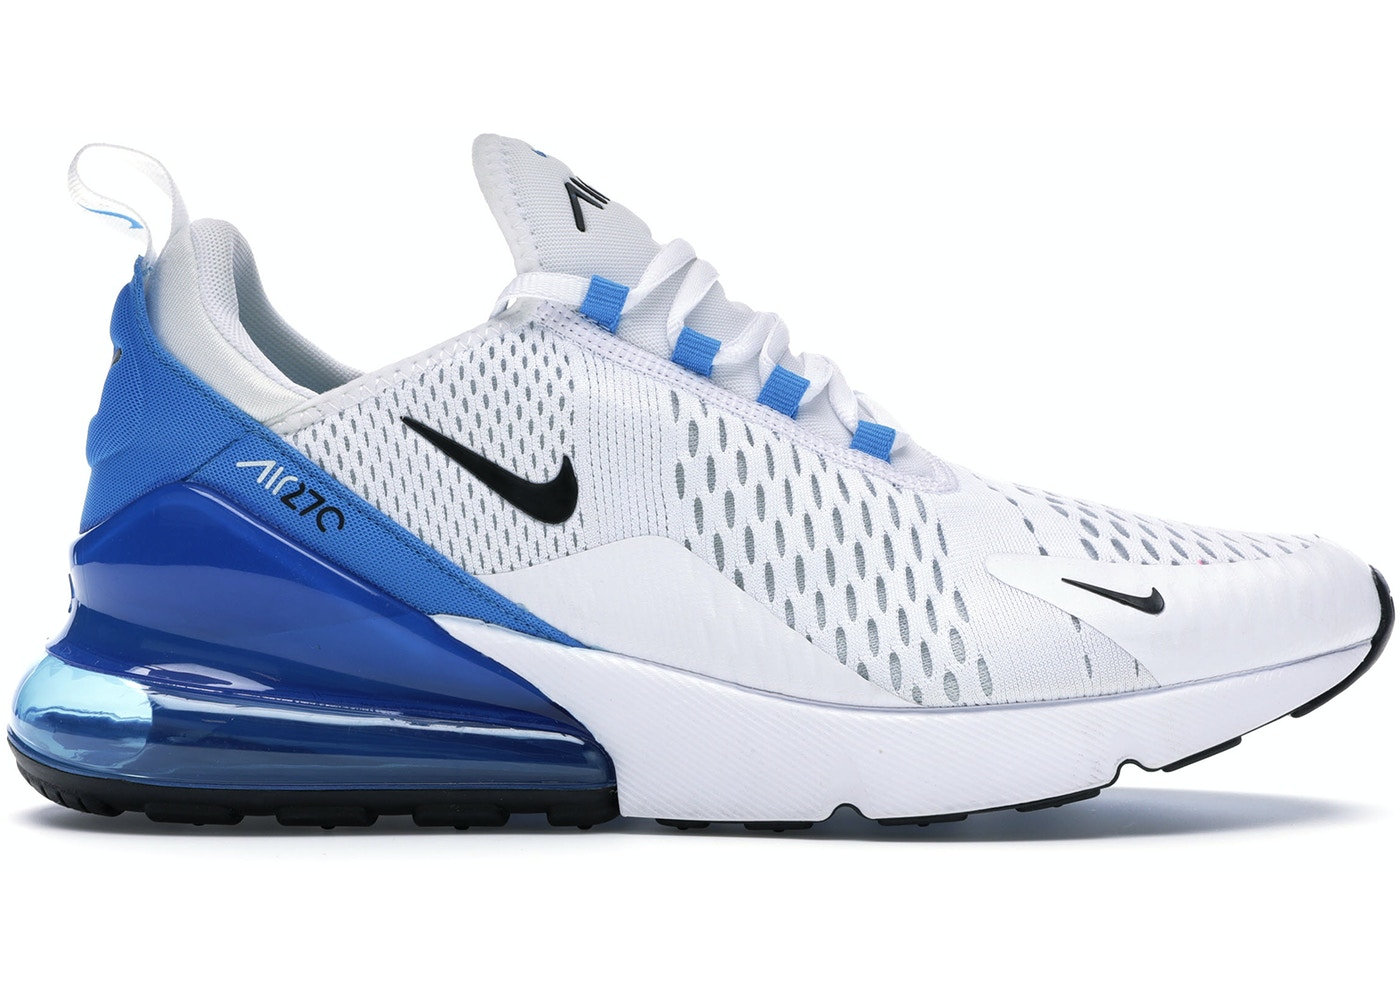 Nike Air Max 270 White Black Photo Blue Ah8050 110